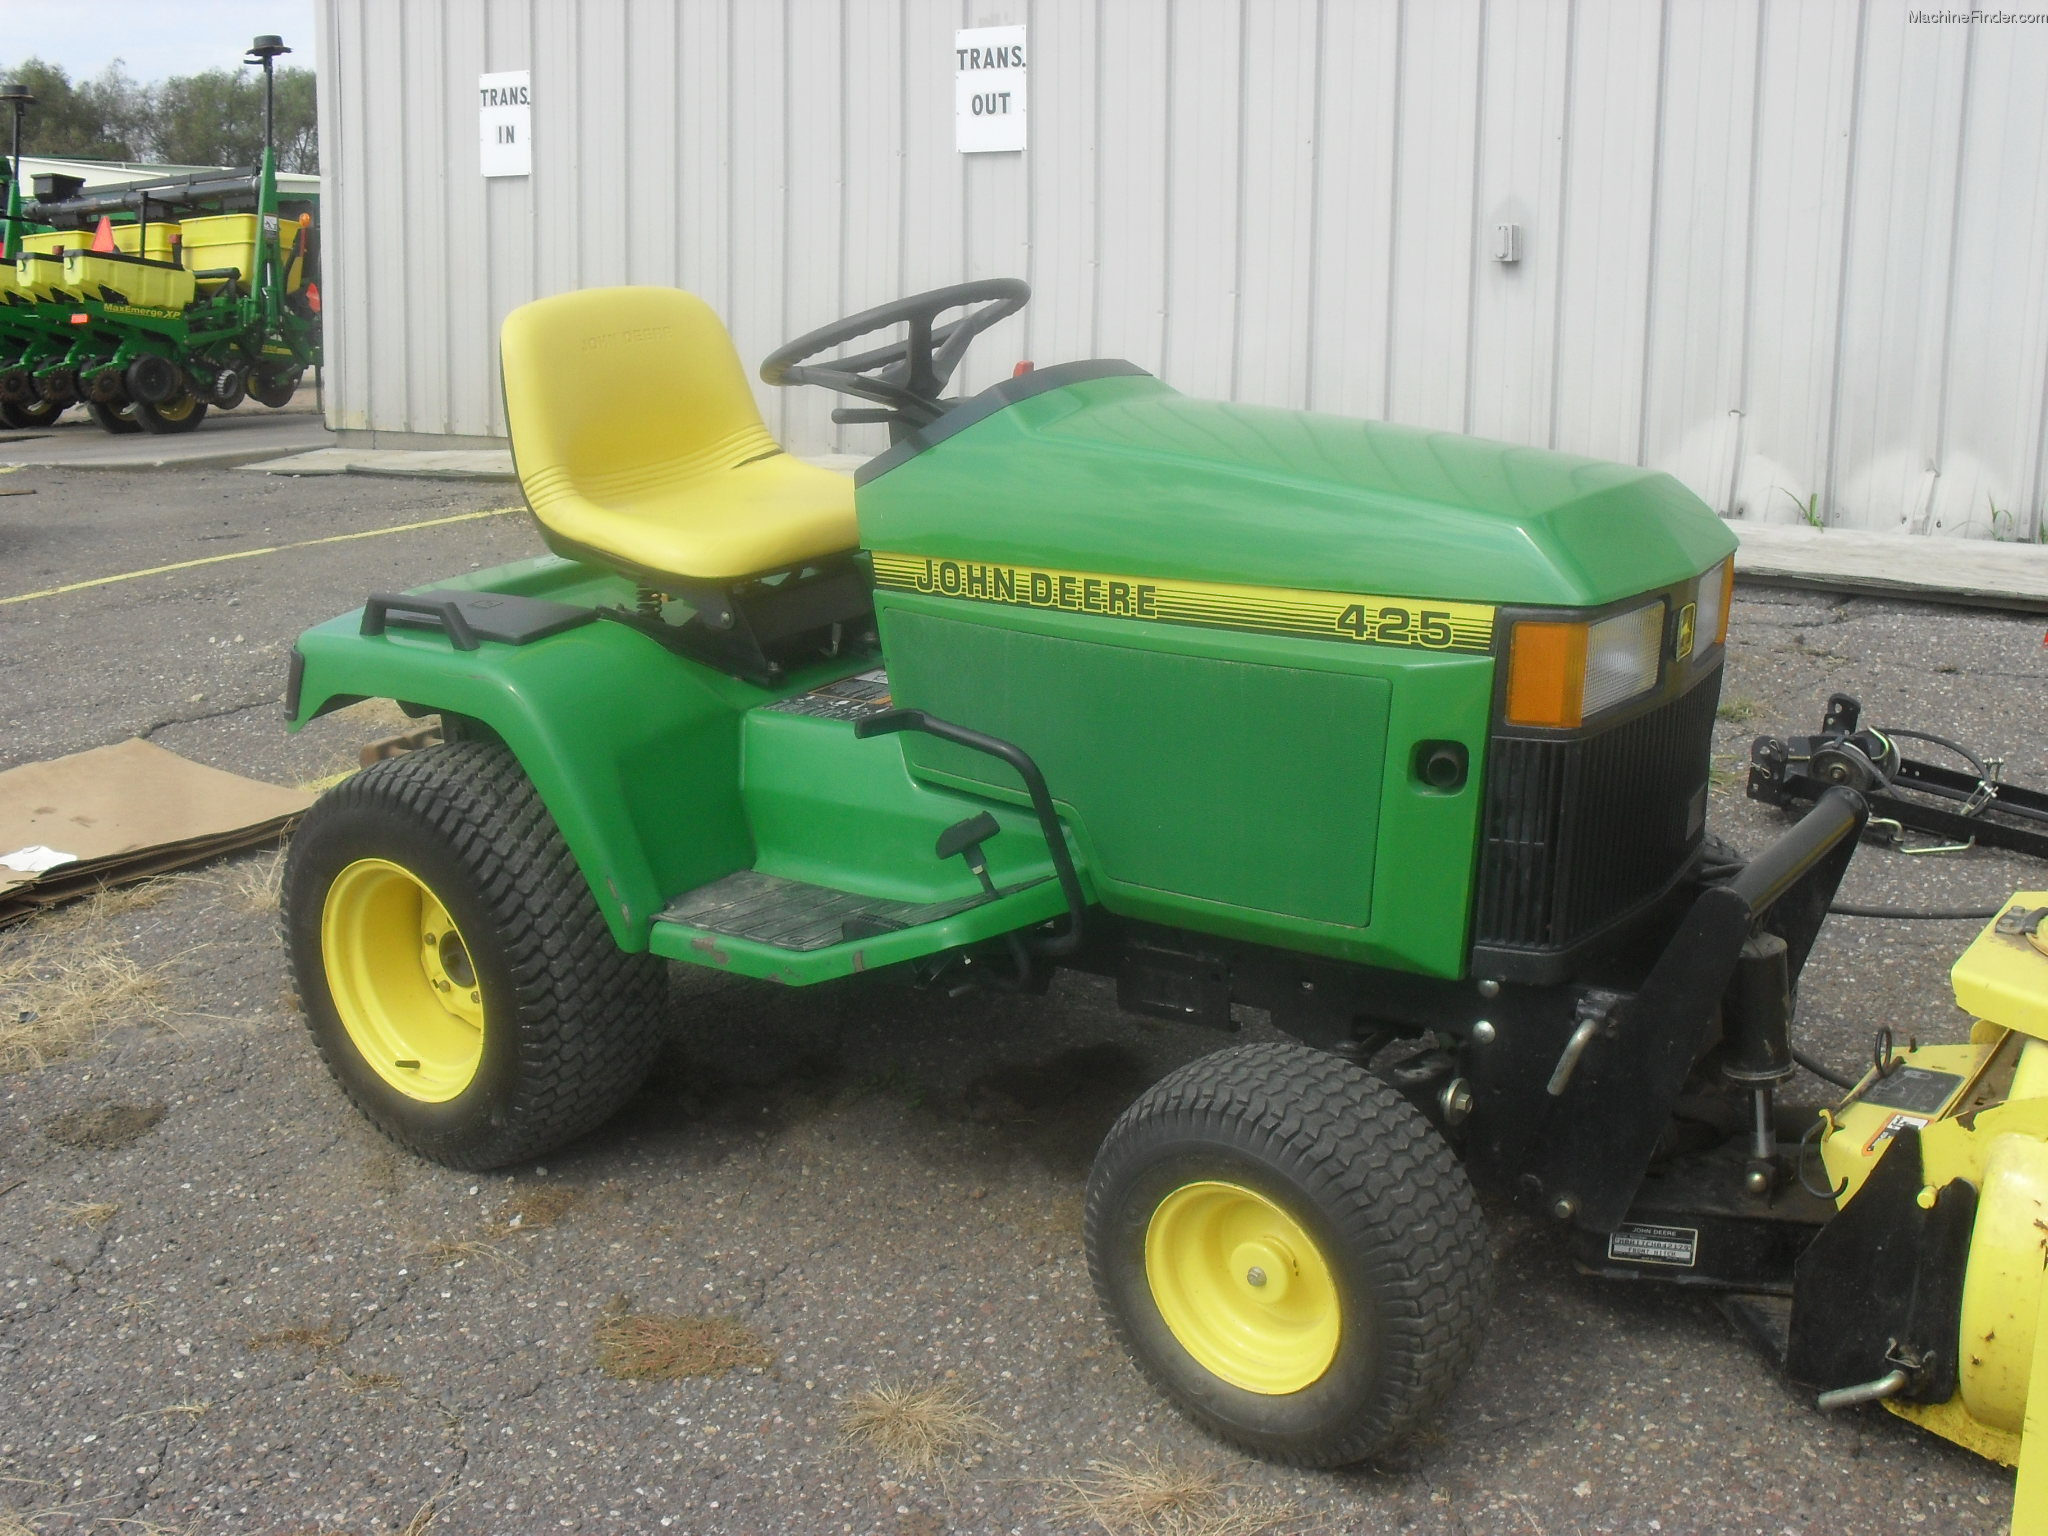 John Deere 425 Replacement Parts : John deere attachments car interior design